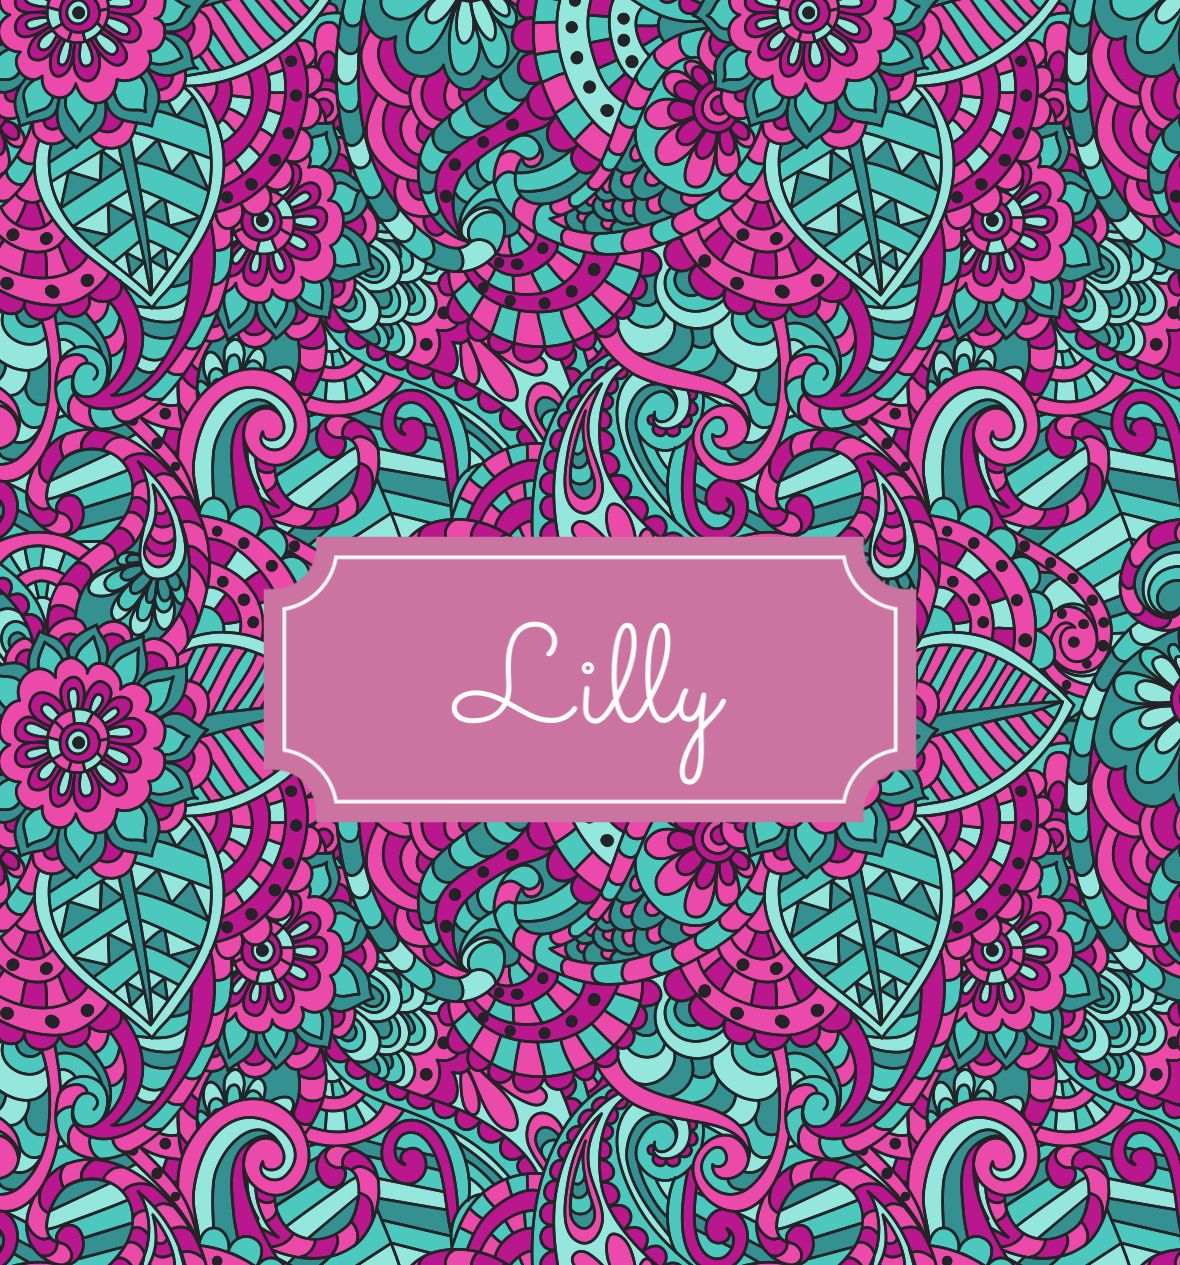 Lilly Name Background Lilly Prints Cute Backrounds Pretty Wallpaper Iphone